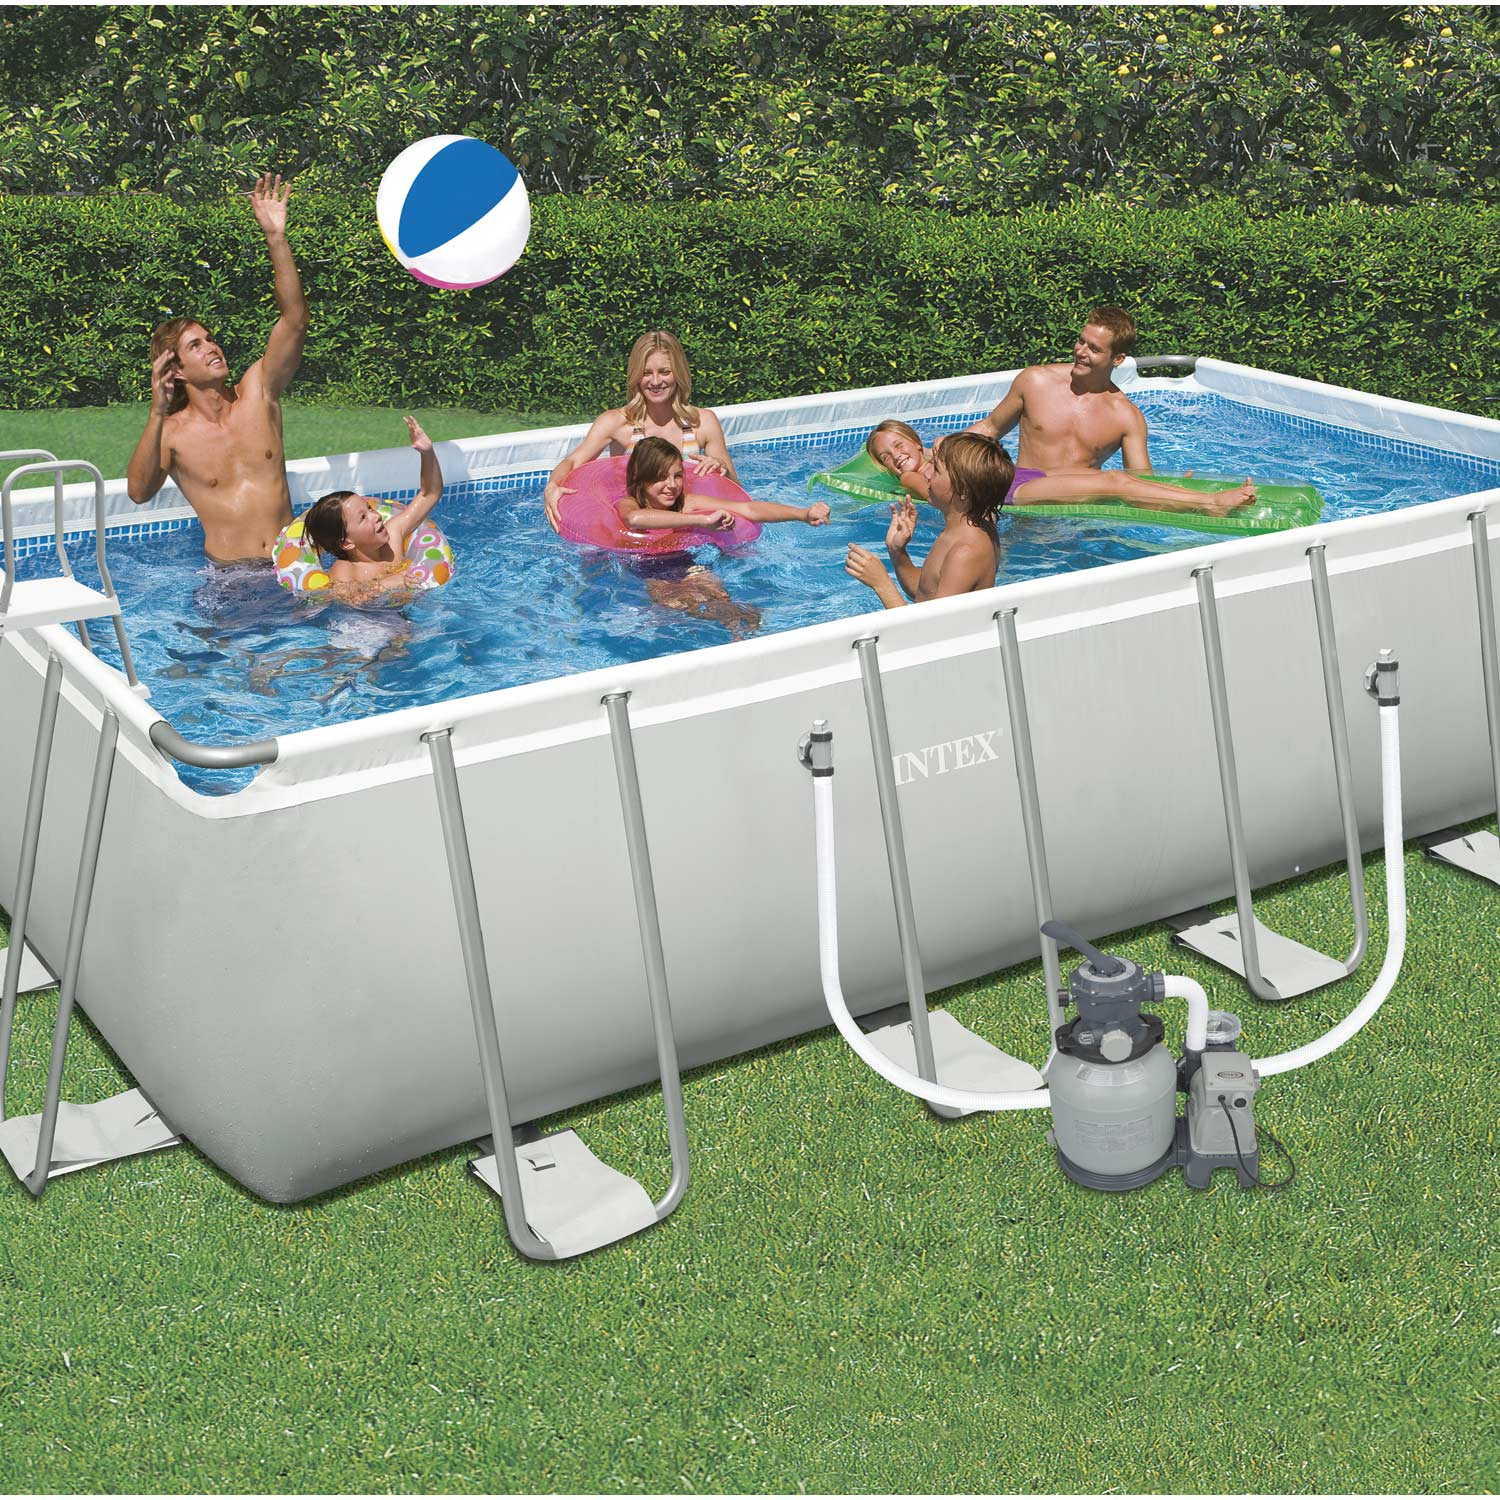 Piscine hors sol autoportante tubulaire ultra silver intex for Piscine aure sol